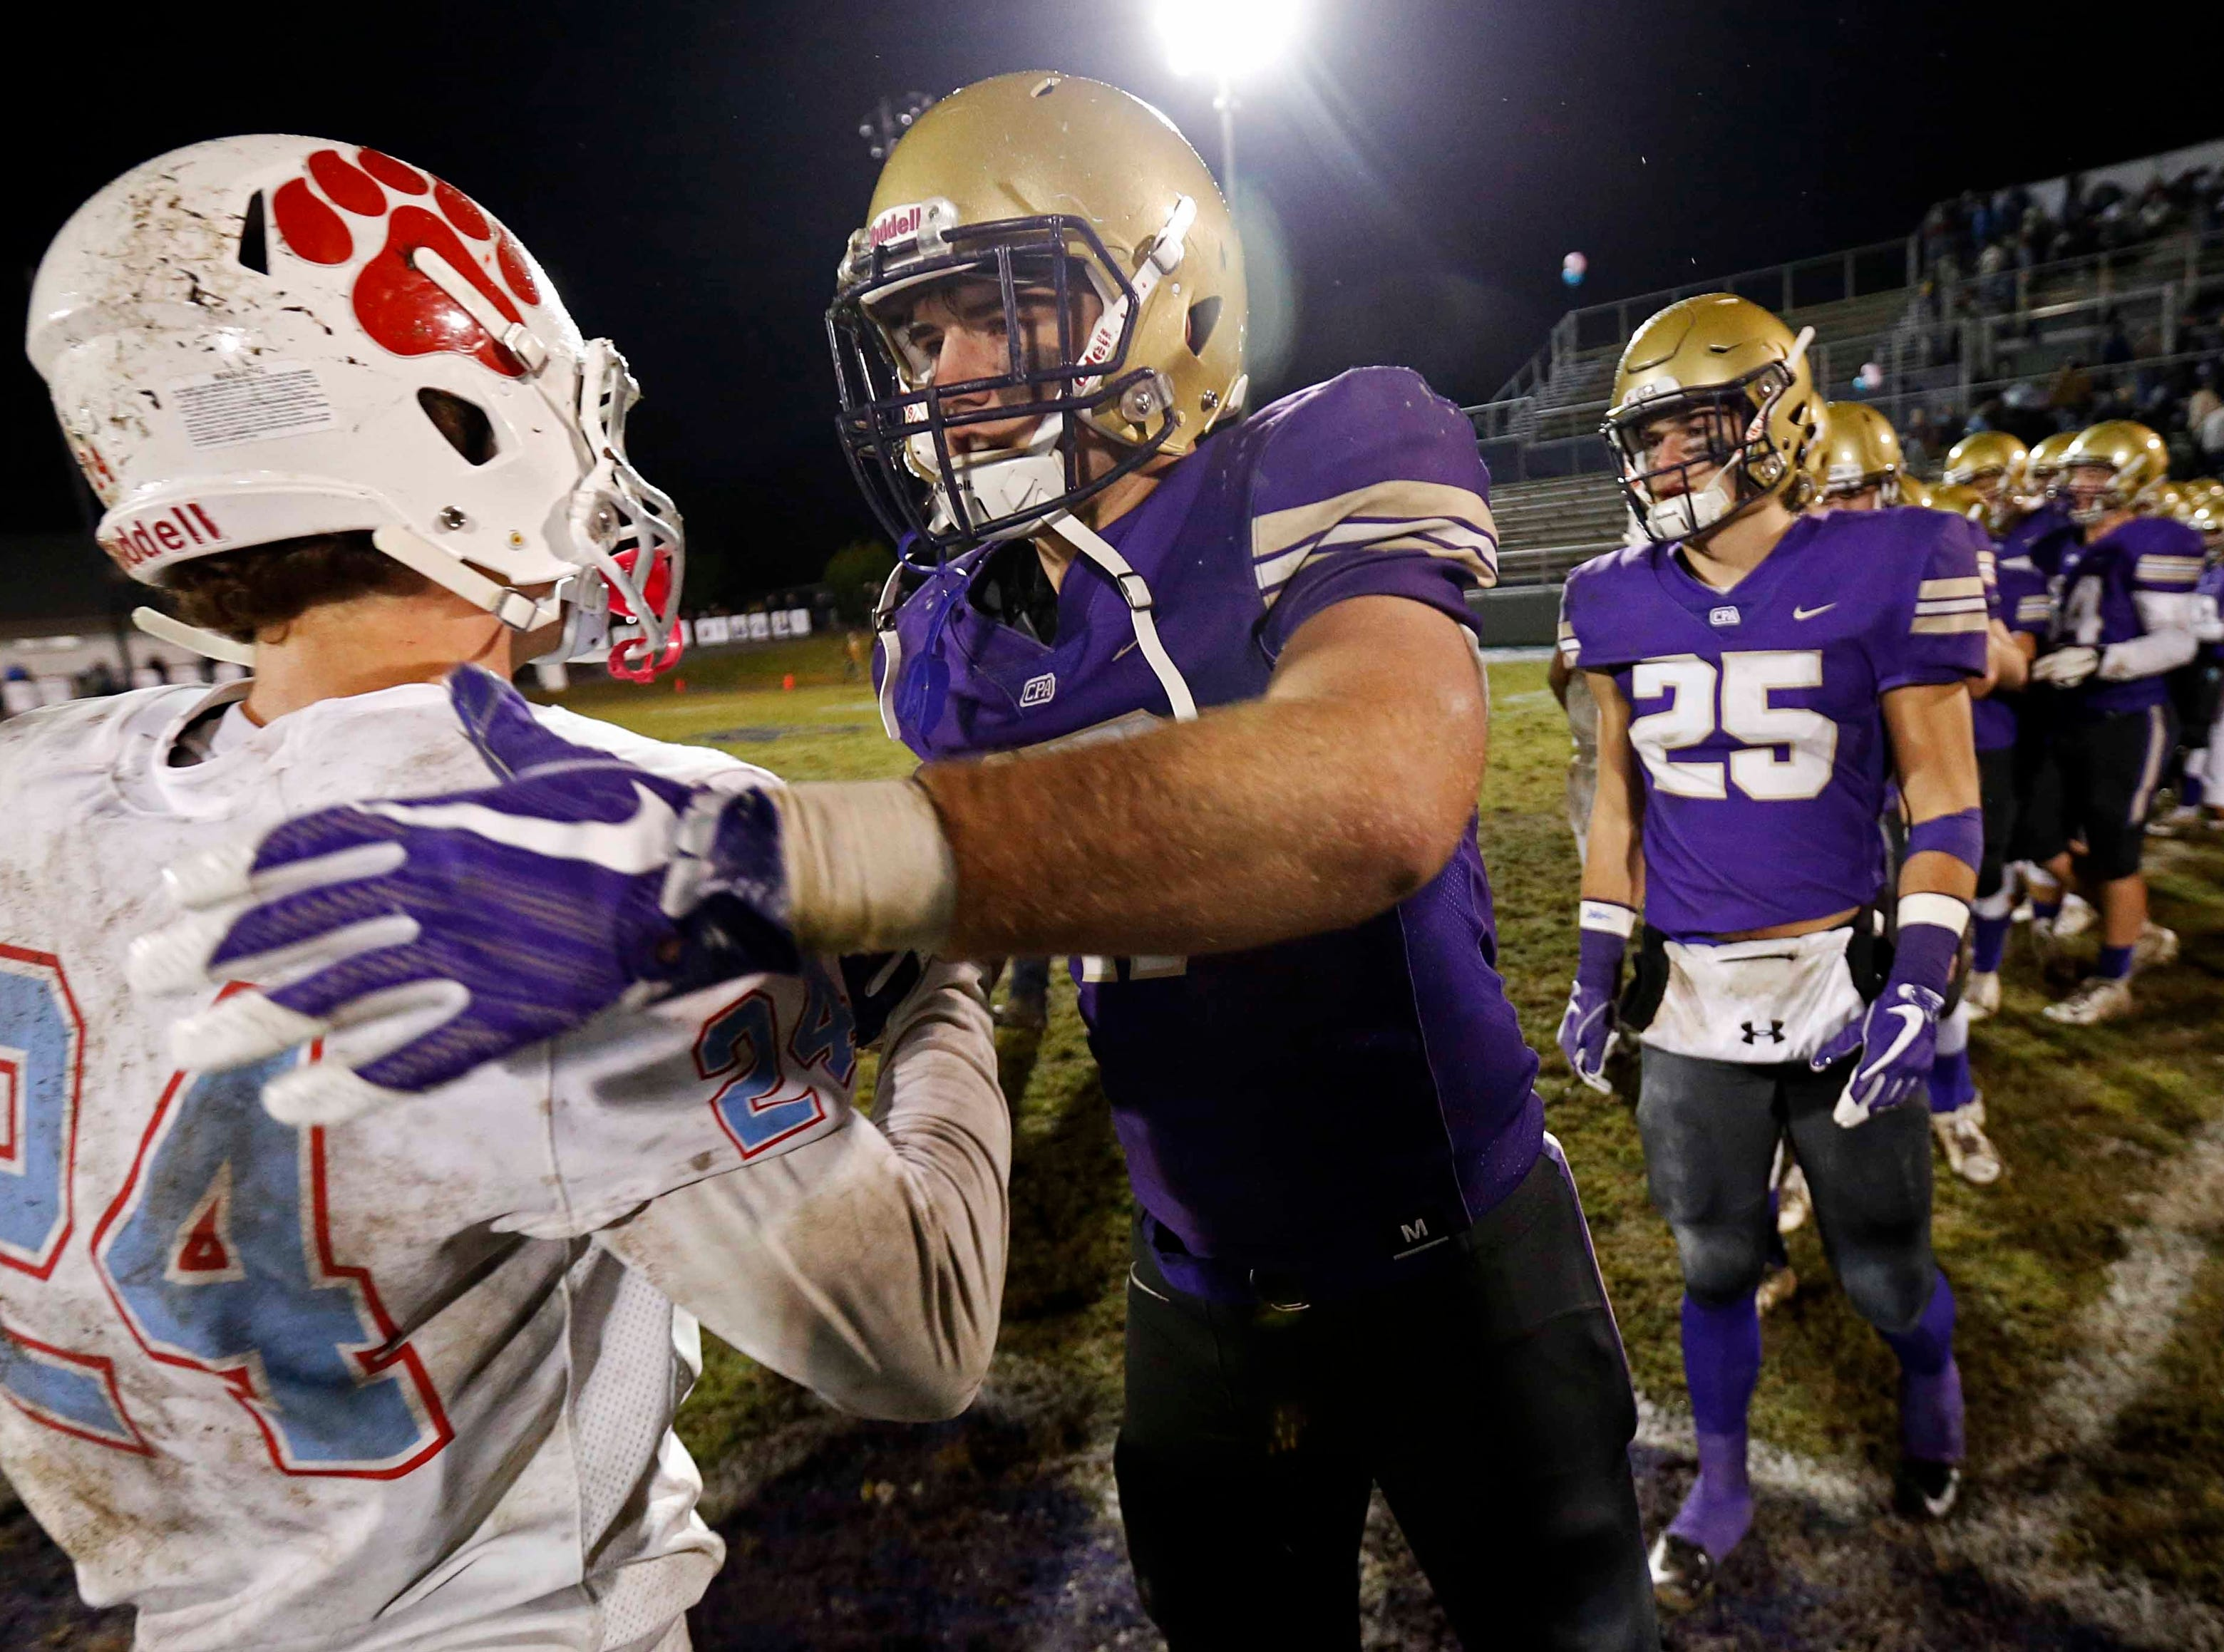 CPA's Bryce McCormick shakes hands with USJ's Craig Carter (24) after their game Friday, Nov. 2, 2018, in Nashville, TN.